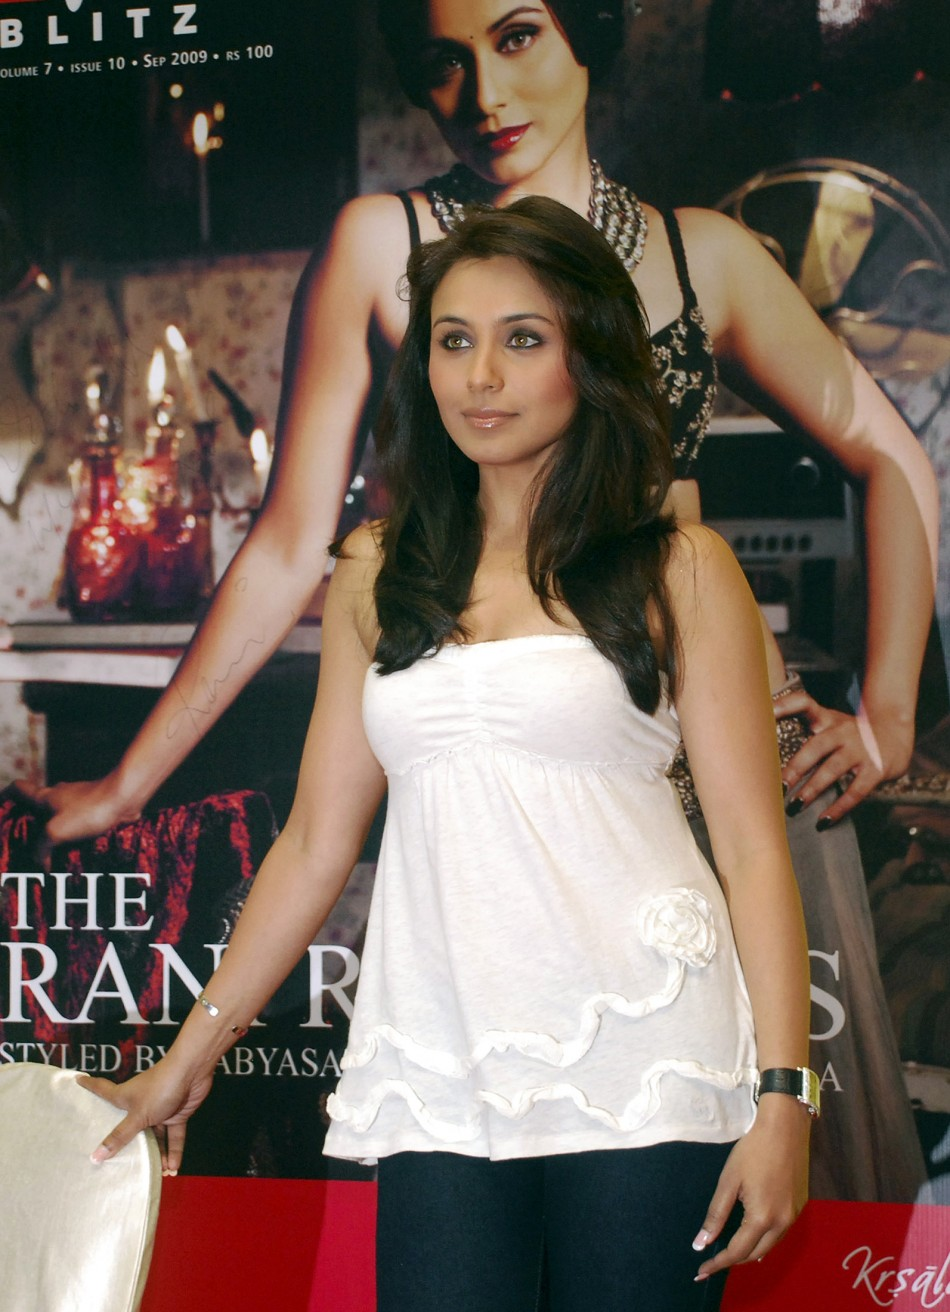 Bollywood actress Rani Mukherjee poses for a picture in Mumbai